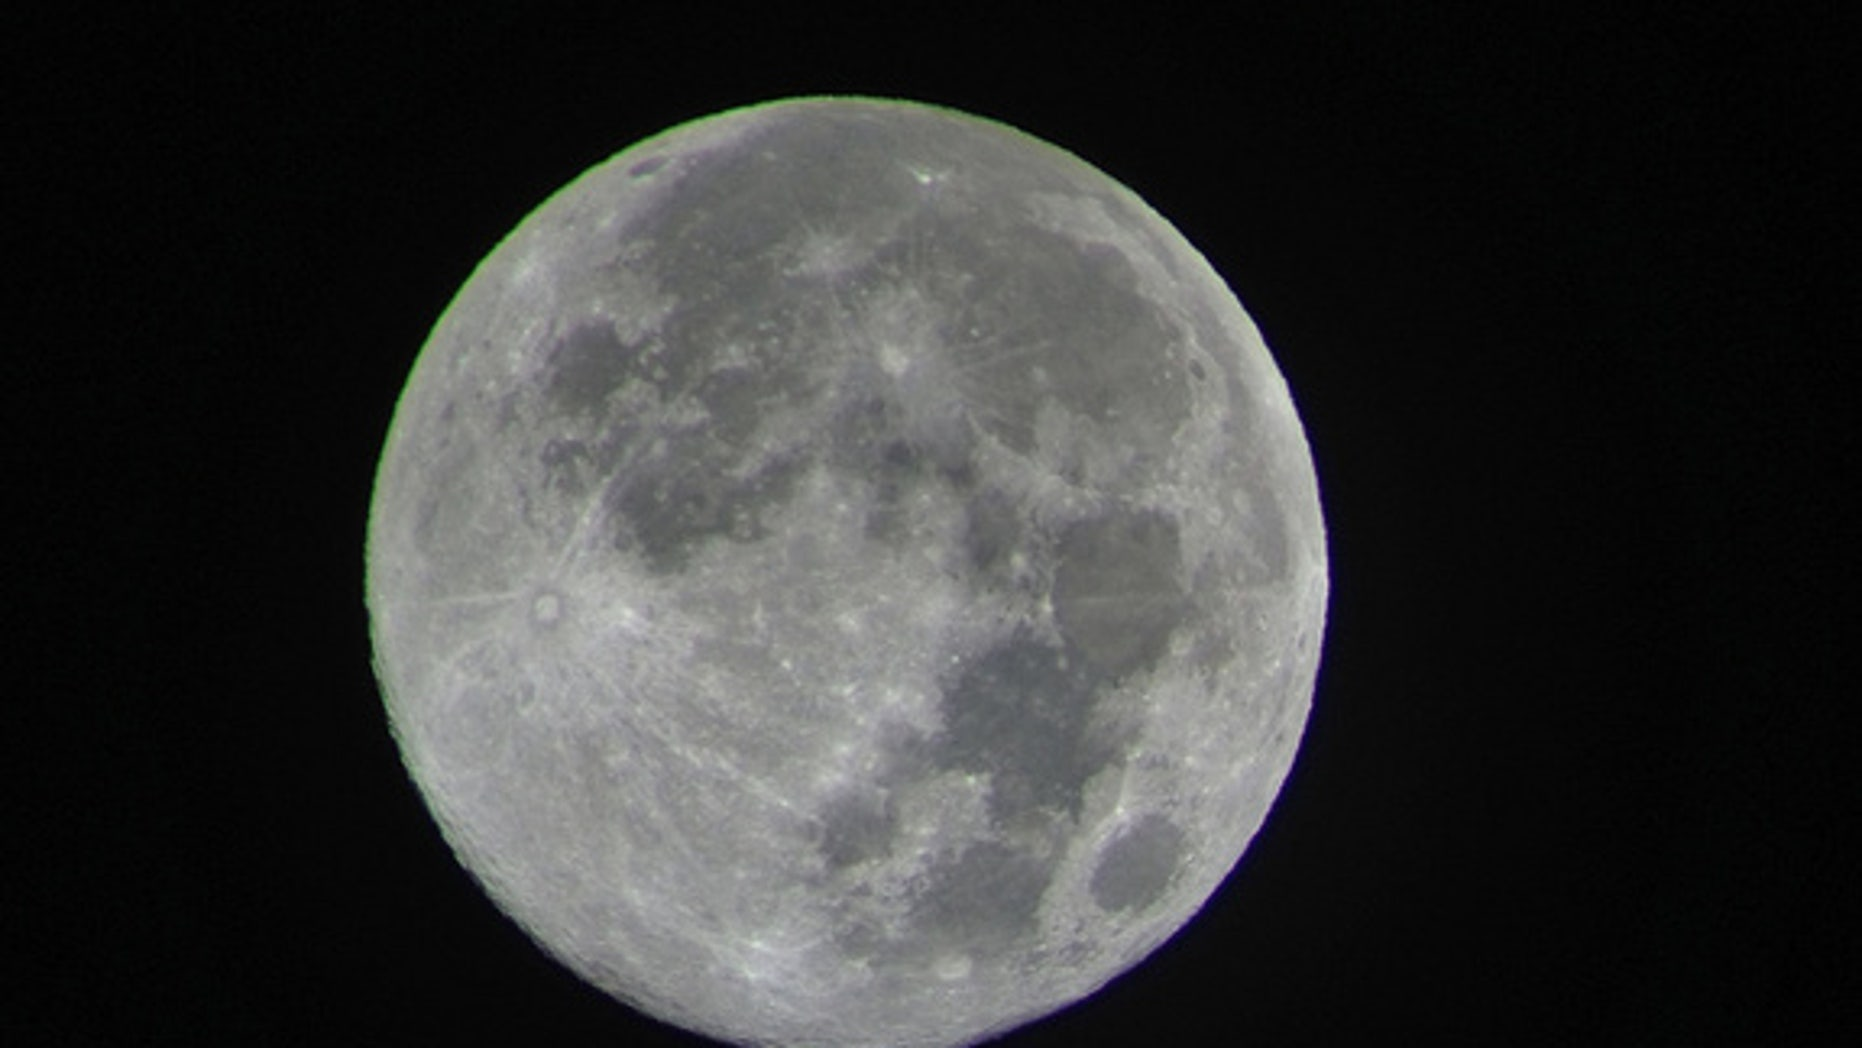 """Night sky watcher Kalani Pokipala sent this image of the full moon from Honolulu, HI, taken August 2, 2012. Pokipala writes: """"All is well and still in Hawaii. Aloha!"""""""